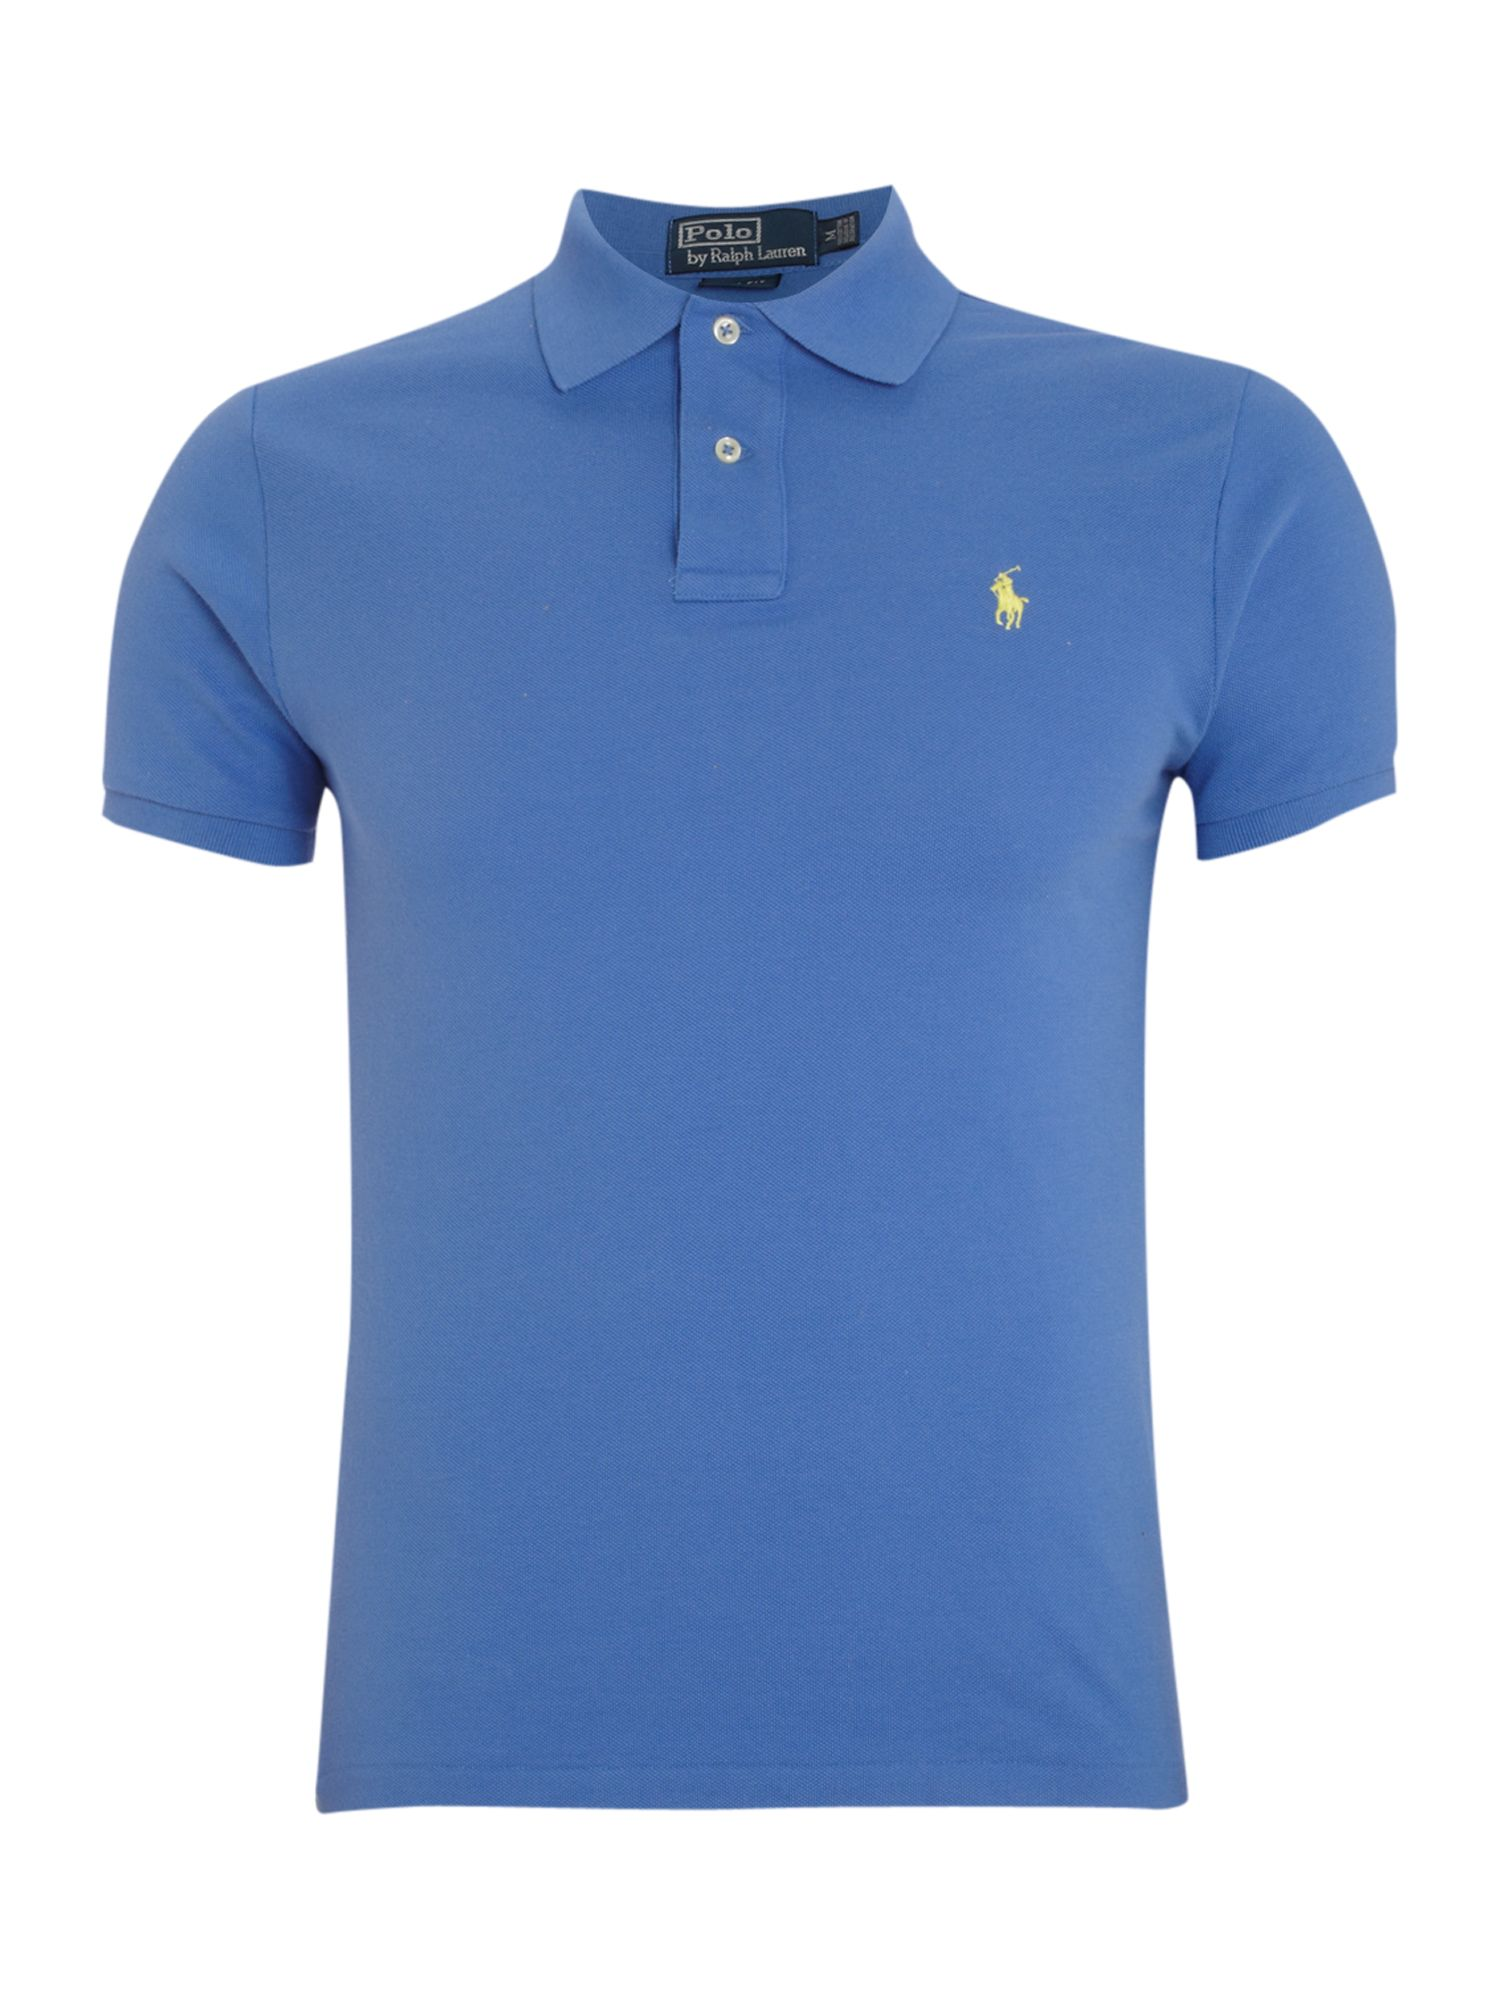 Polo ralph lauren slim fitted polo shirt in blue for men for Cobalt blue polo shirt